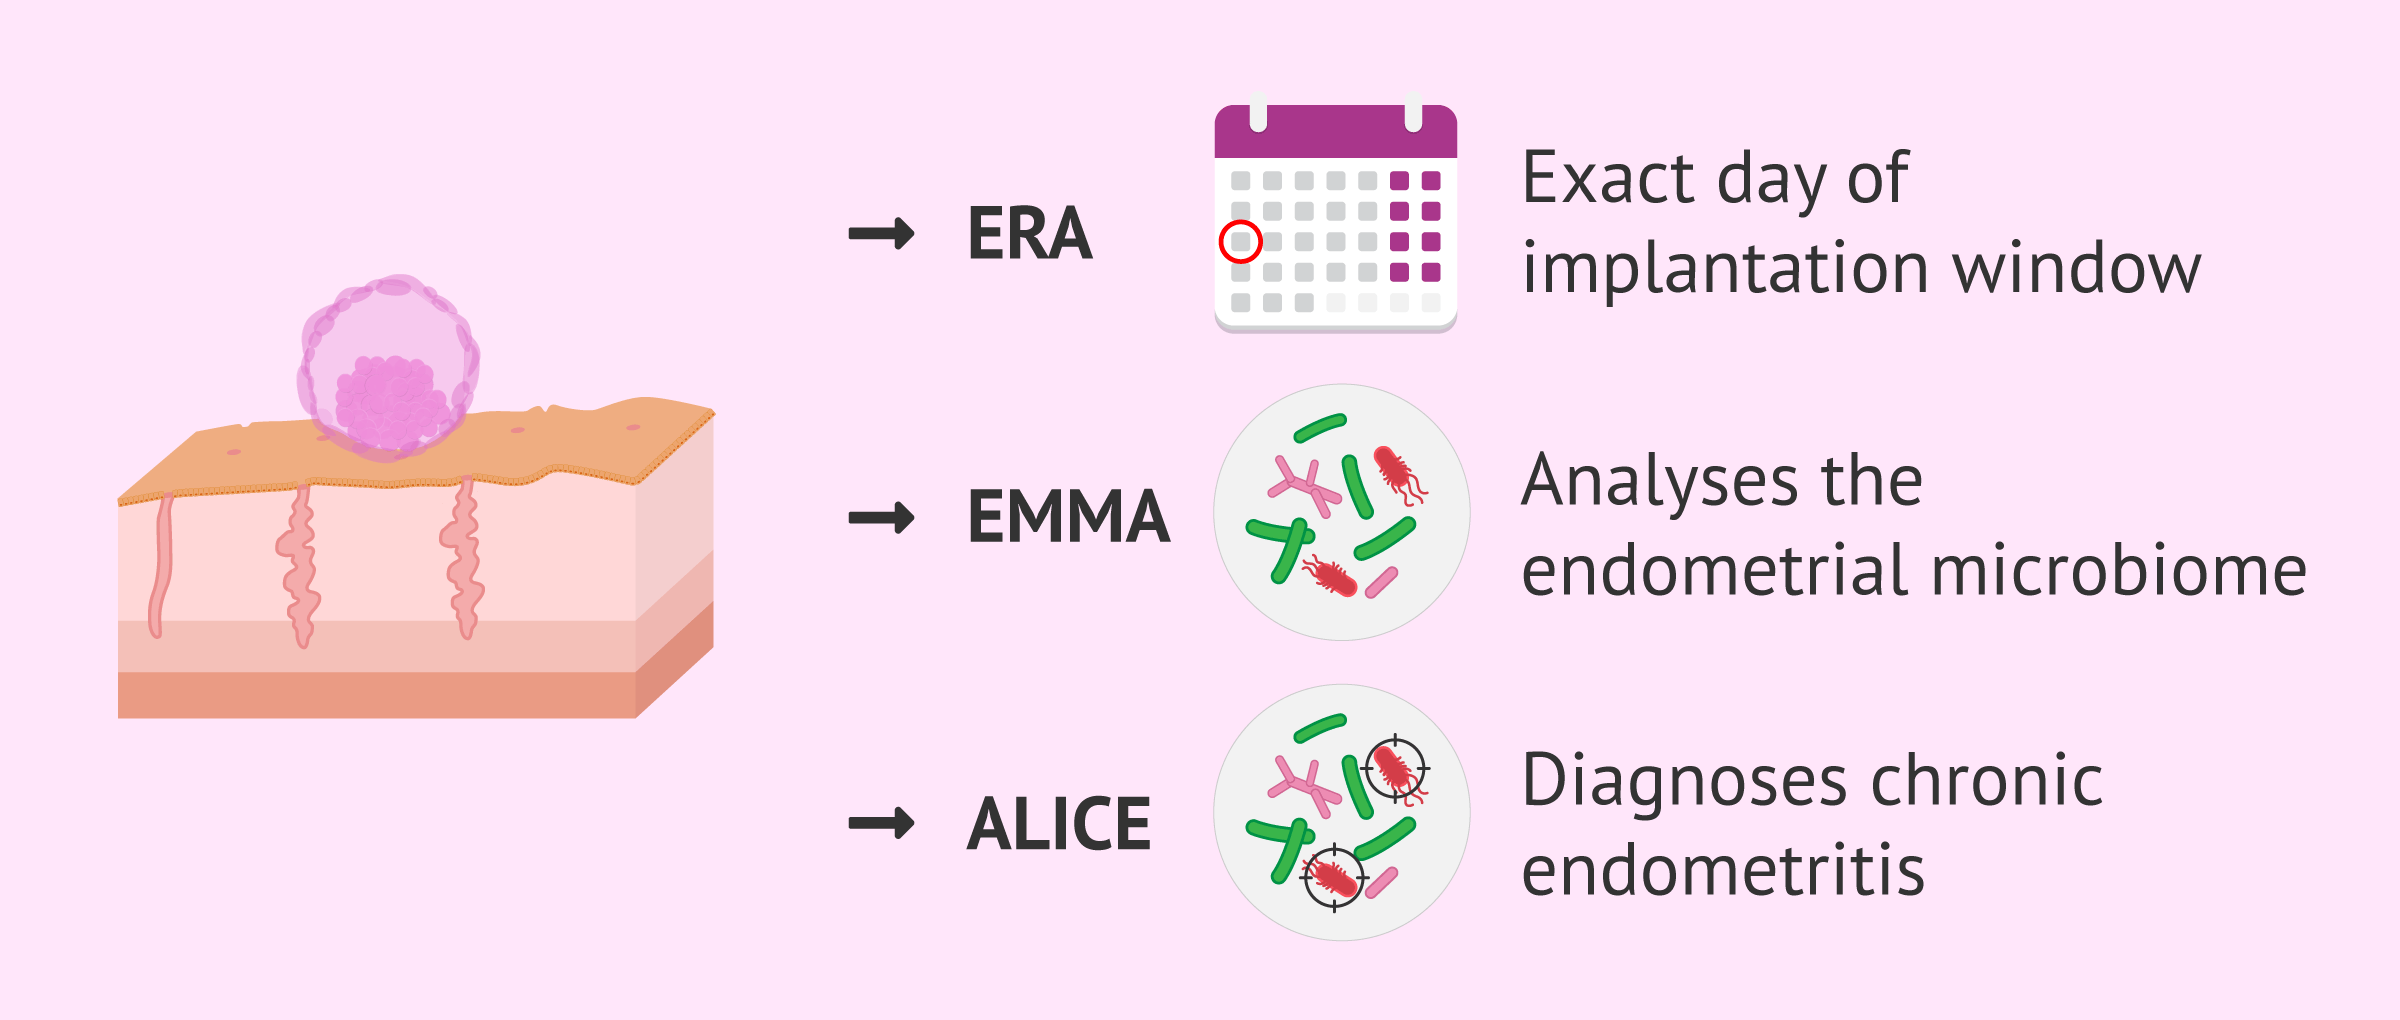 EndomeTRIO: ERA, EMMA and ALICE Tests